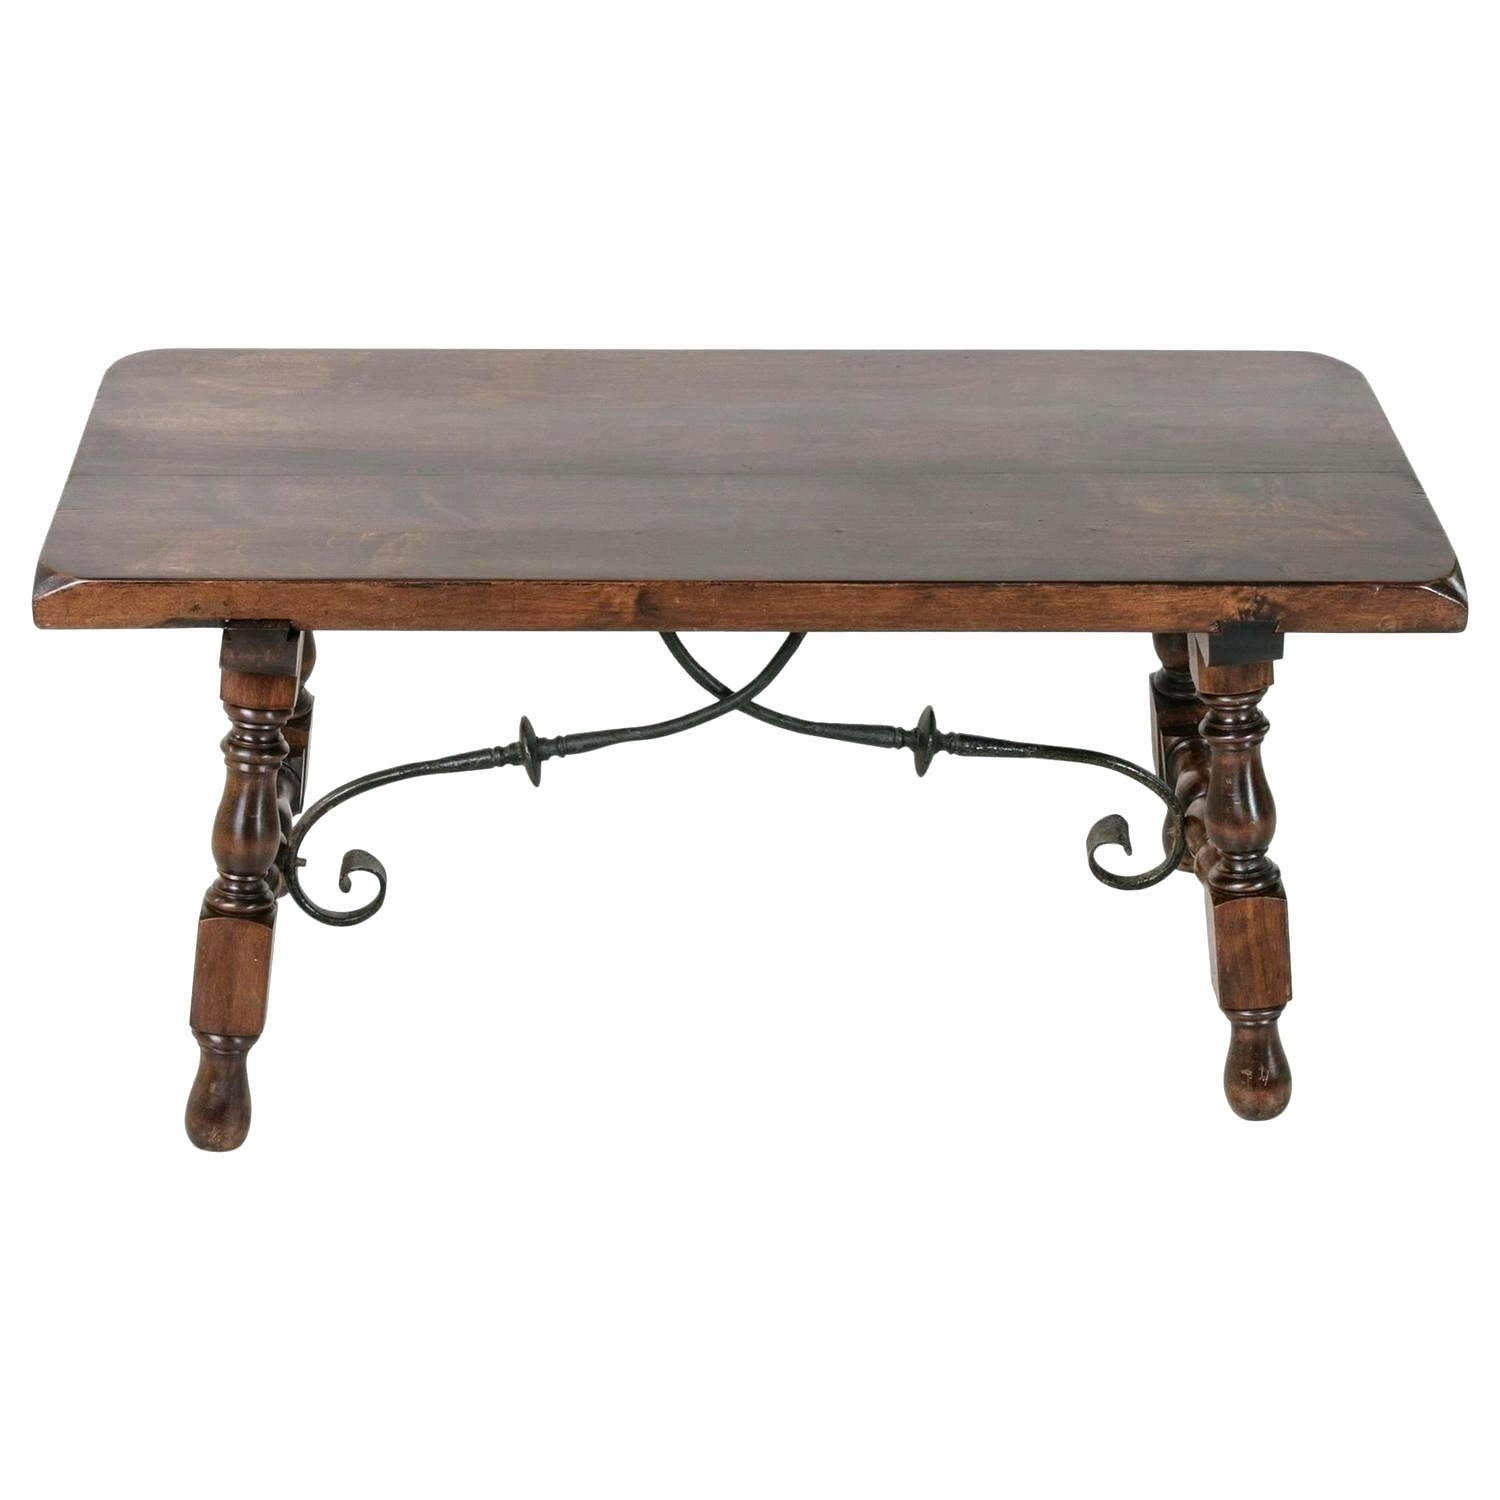 Furniture In Spanish Elegant Nice Coffee Tables Table Spanish For With Regard To Spanish Coffee Tables (View 11 of 30)